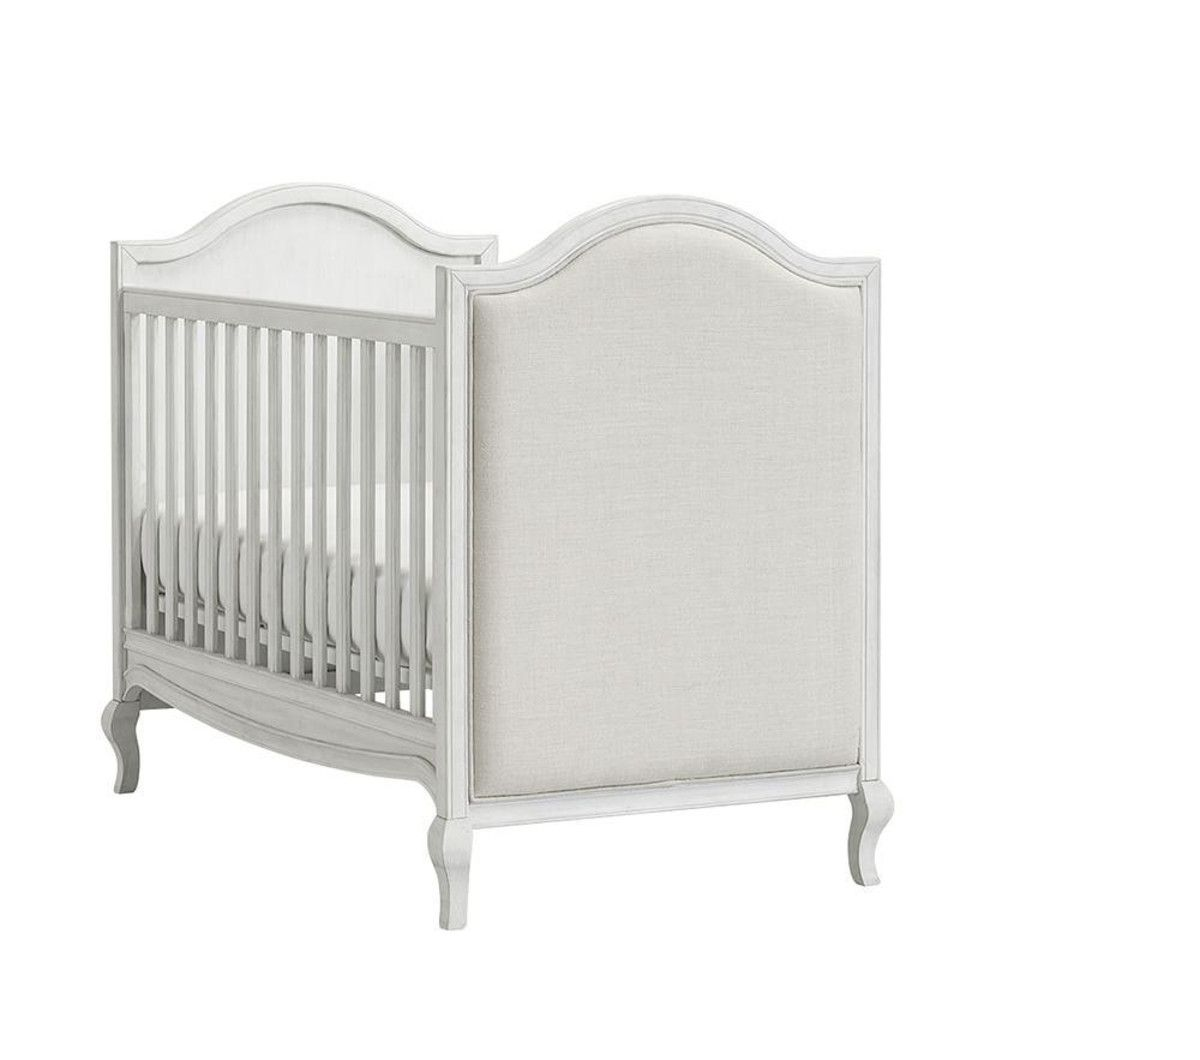 Remy Upholstered Cot   Nursery   Pinterest   Cots, Nursery and Crib